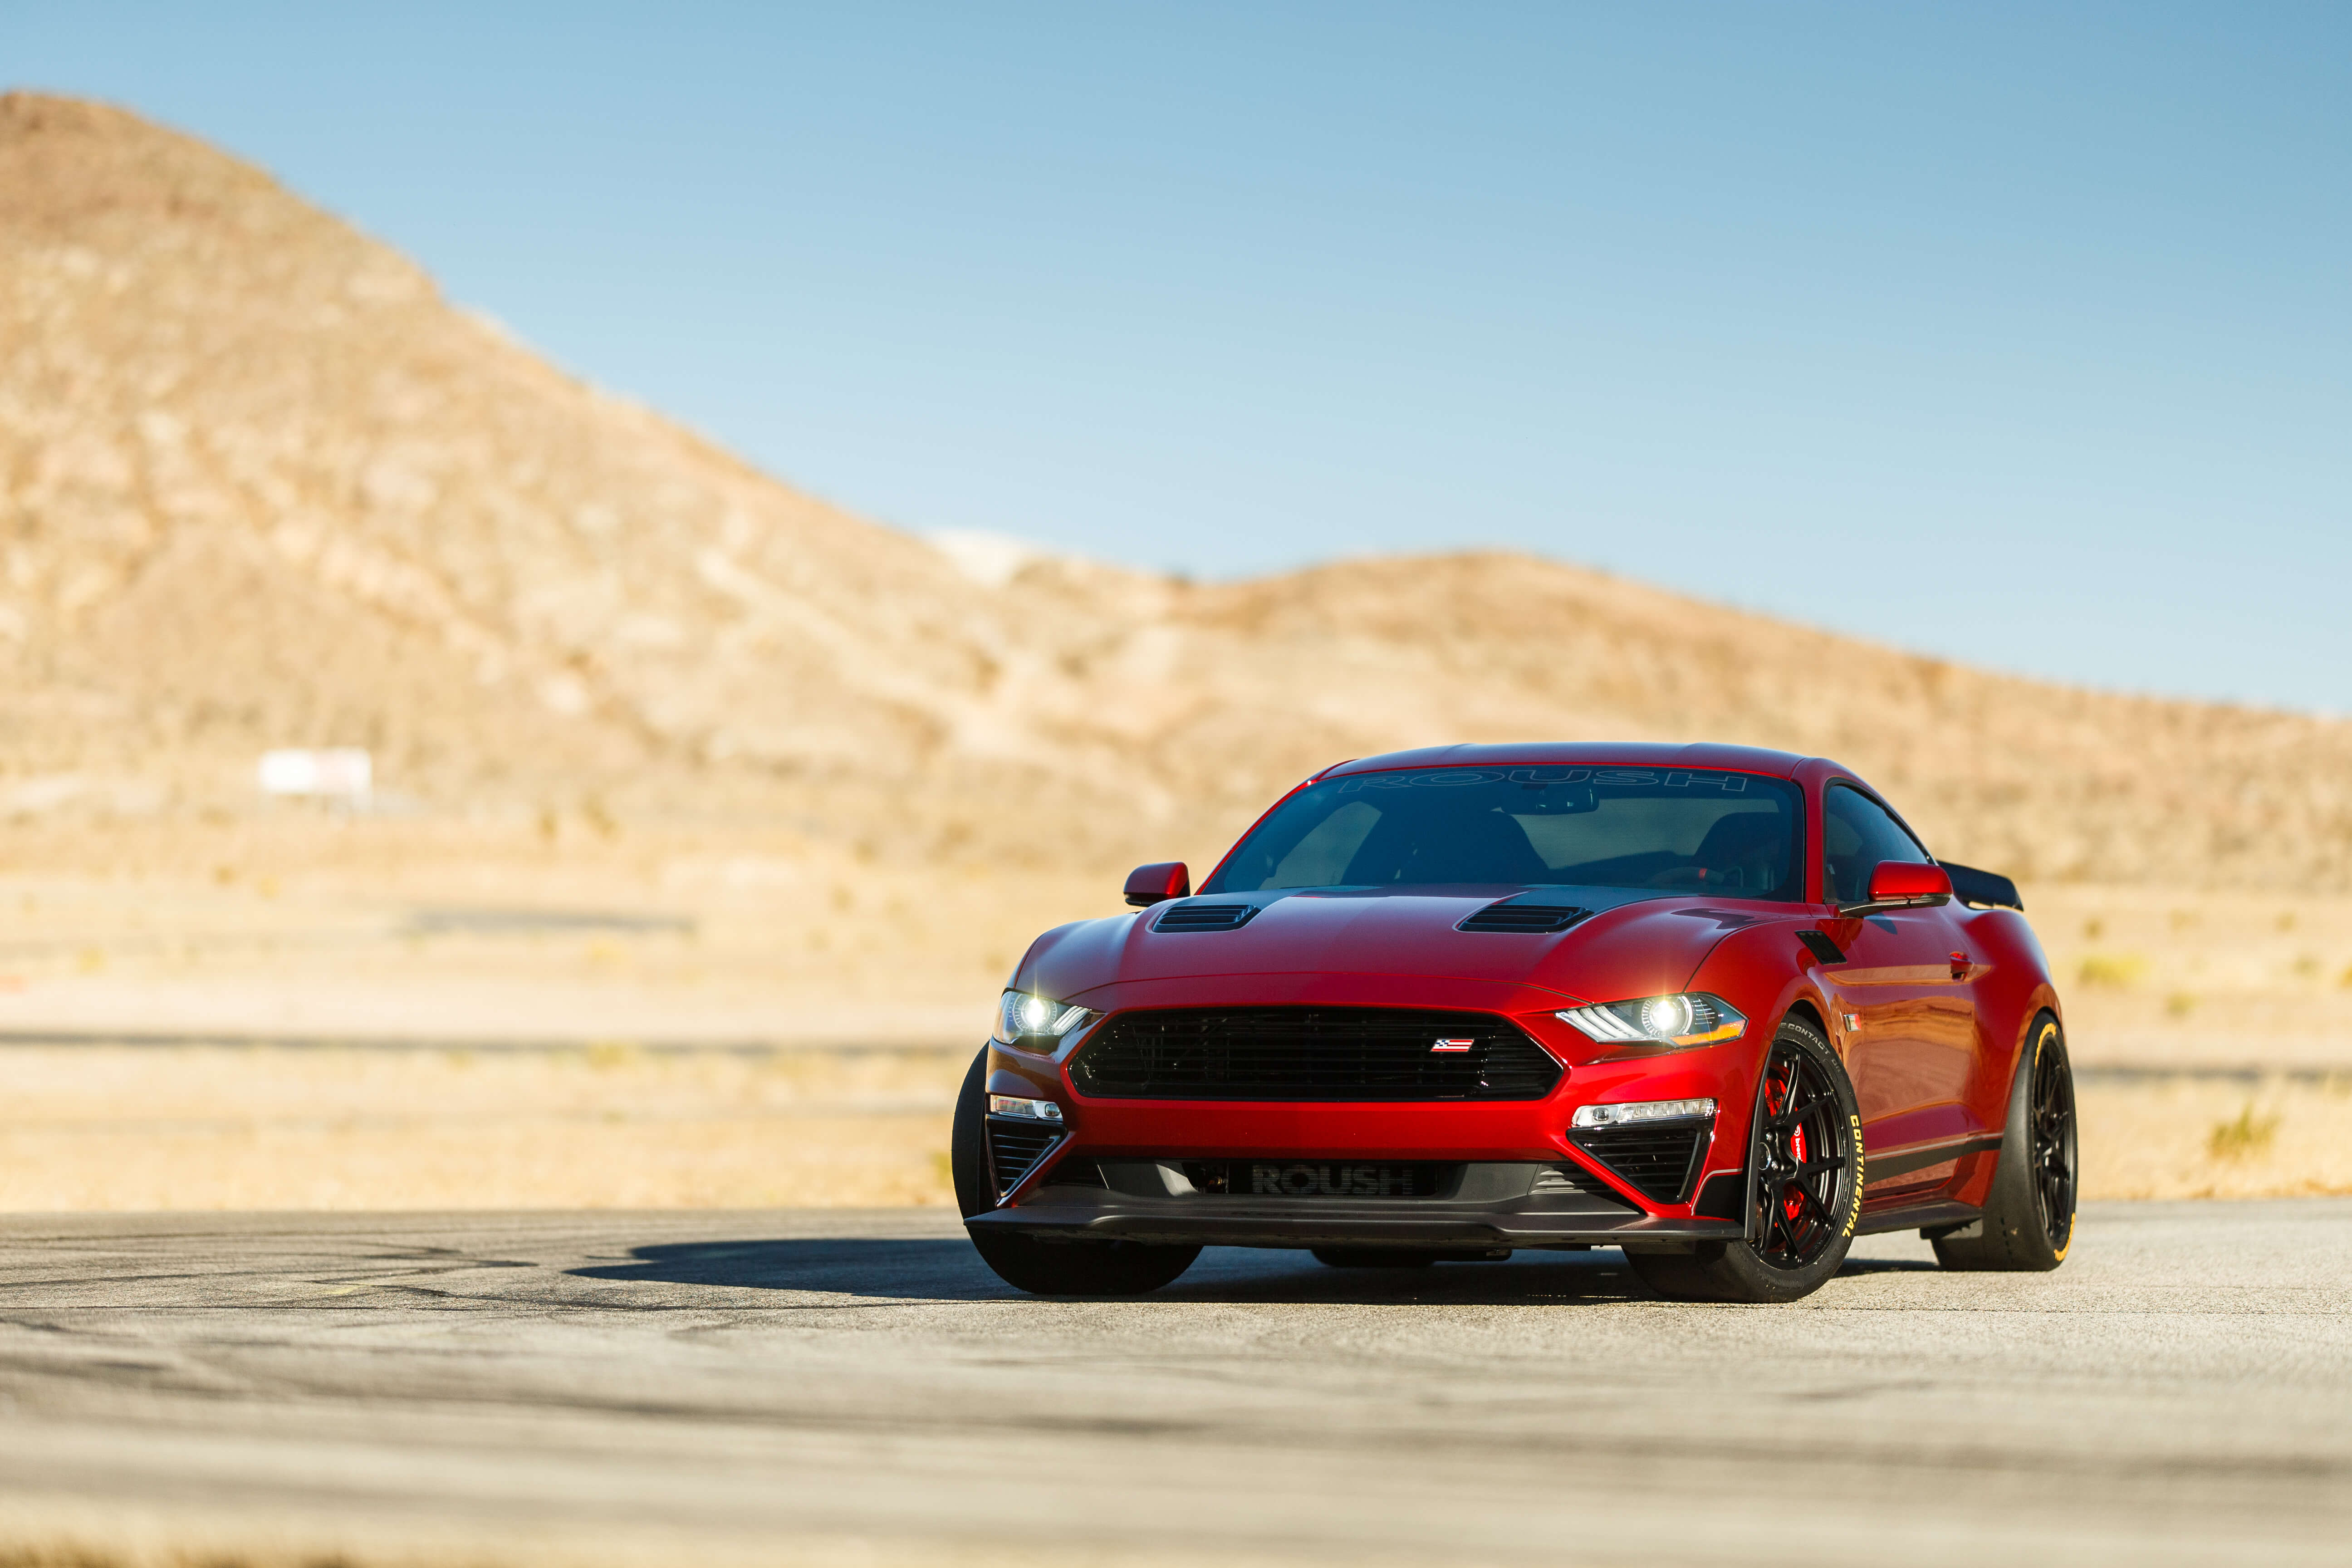 The Fastest ROUSH Mustang to date | Jack Roush Edition Mustang